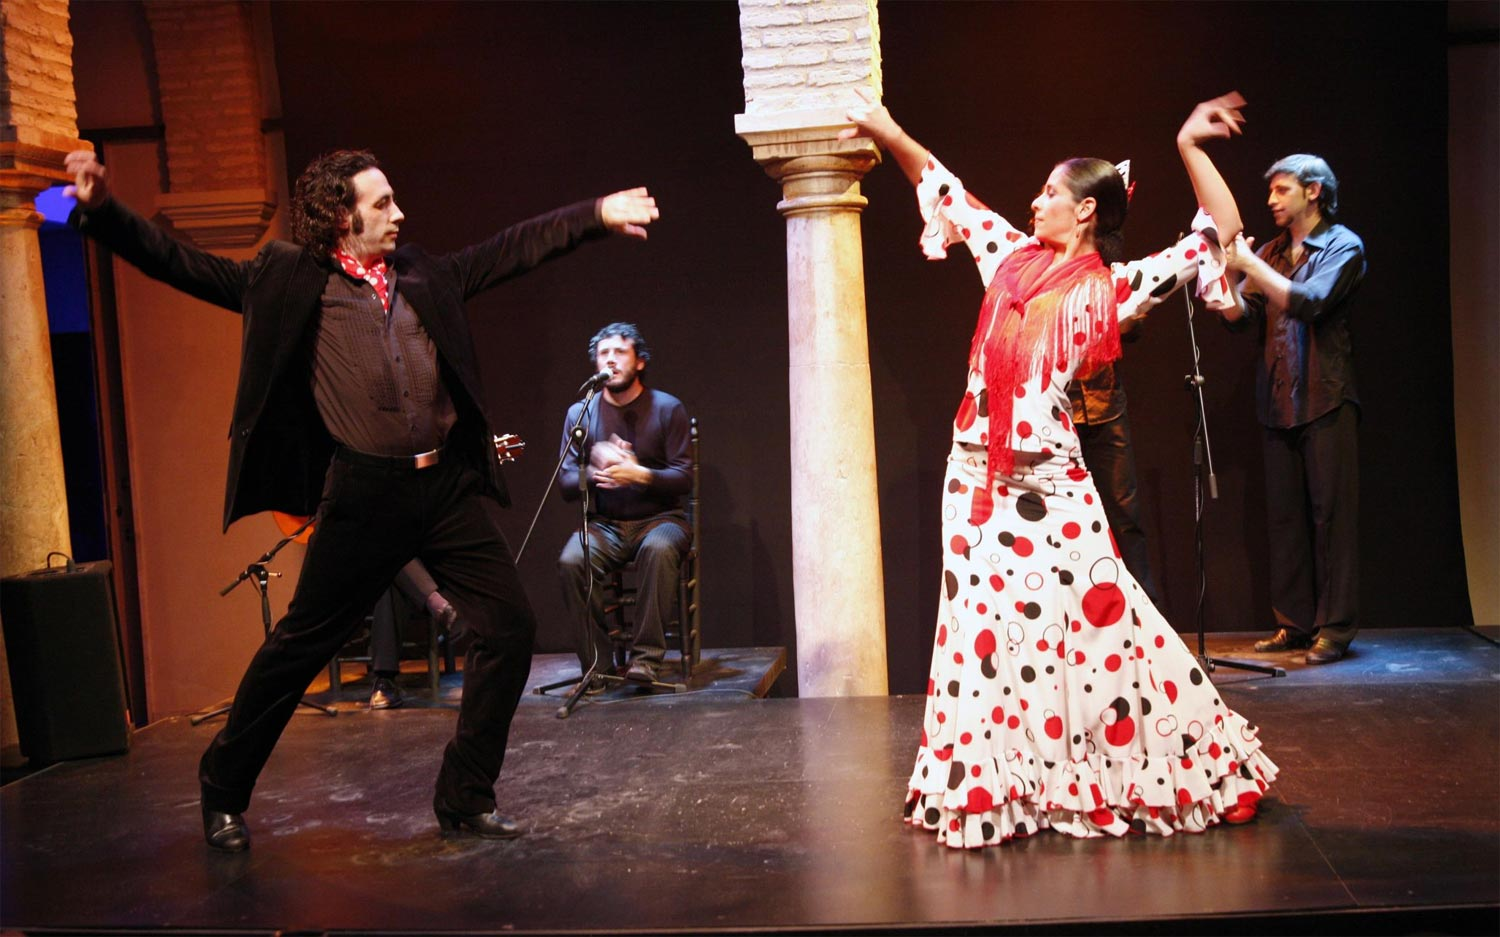 Hotel maestranza sevilla flamenco tickets reserve your for Espectaculo flamenco seville sevilla